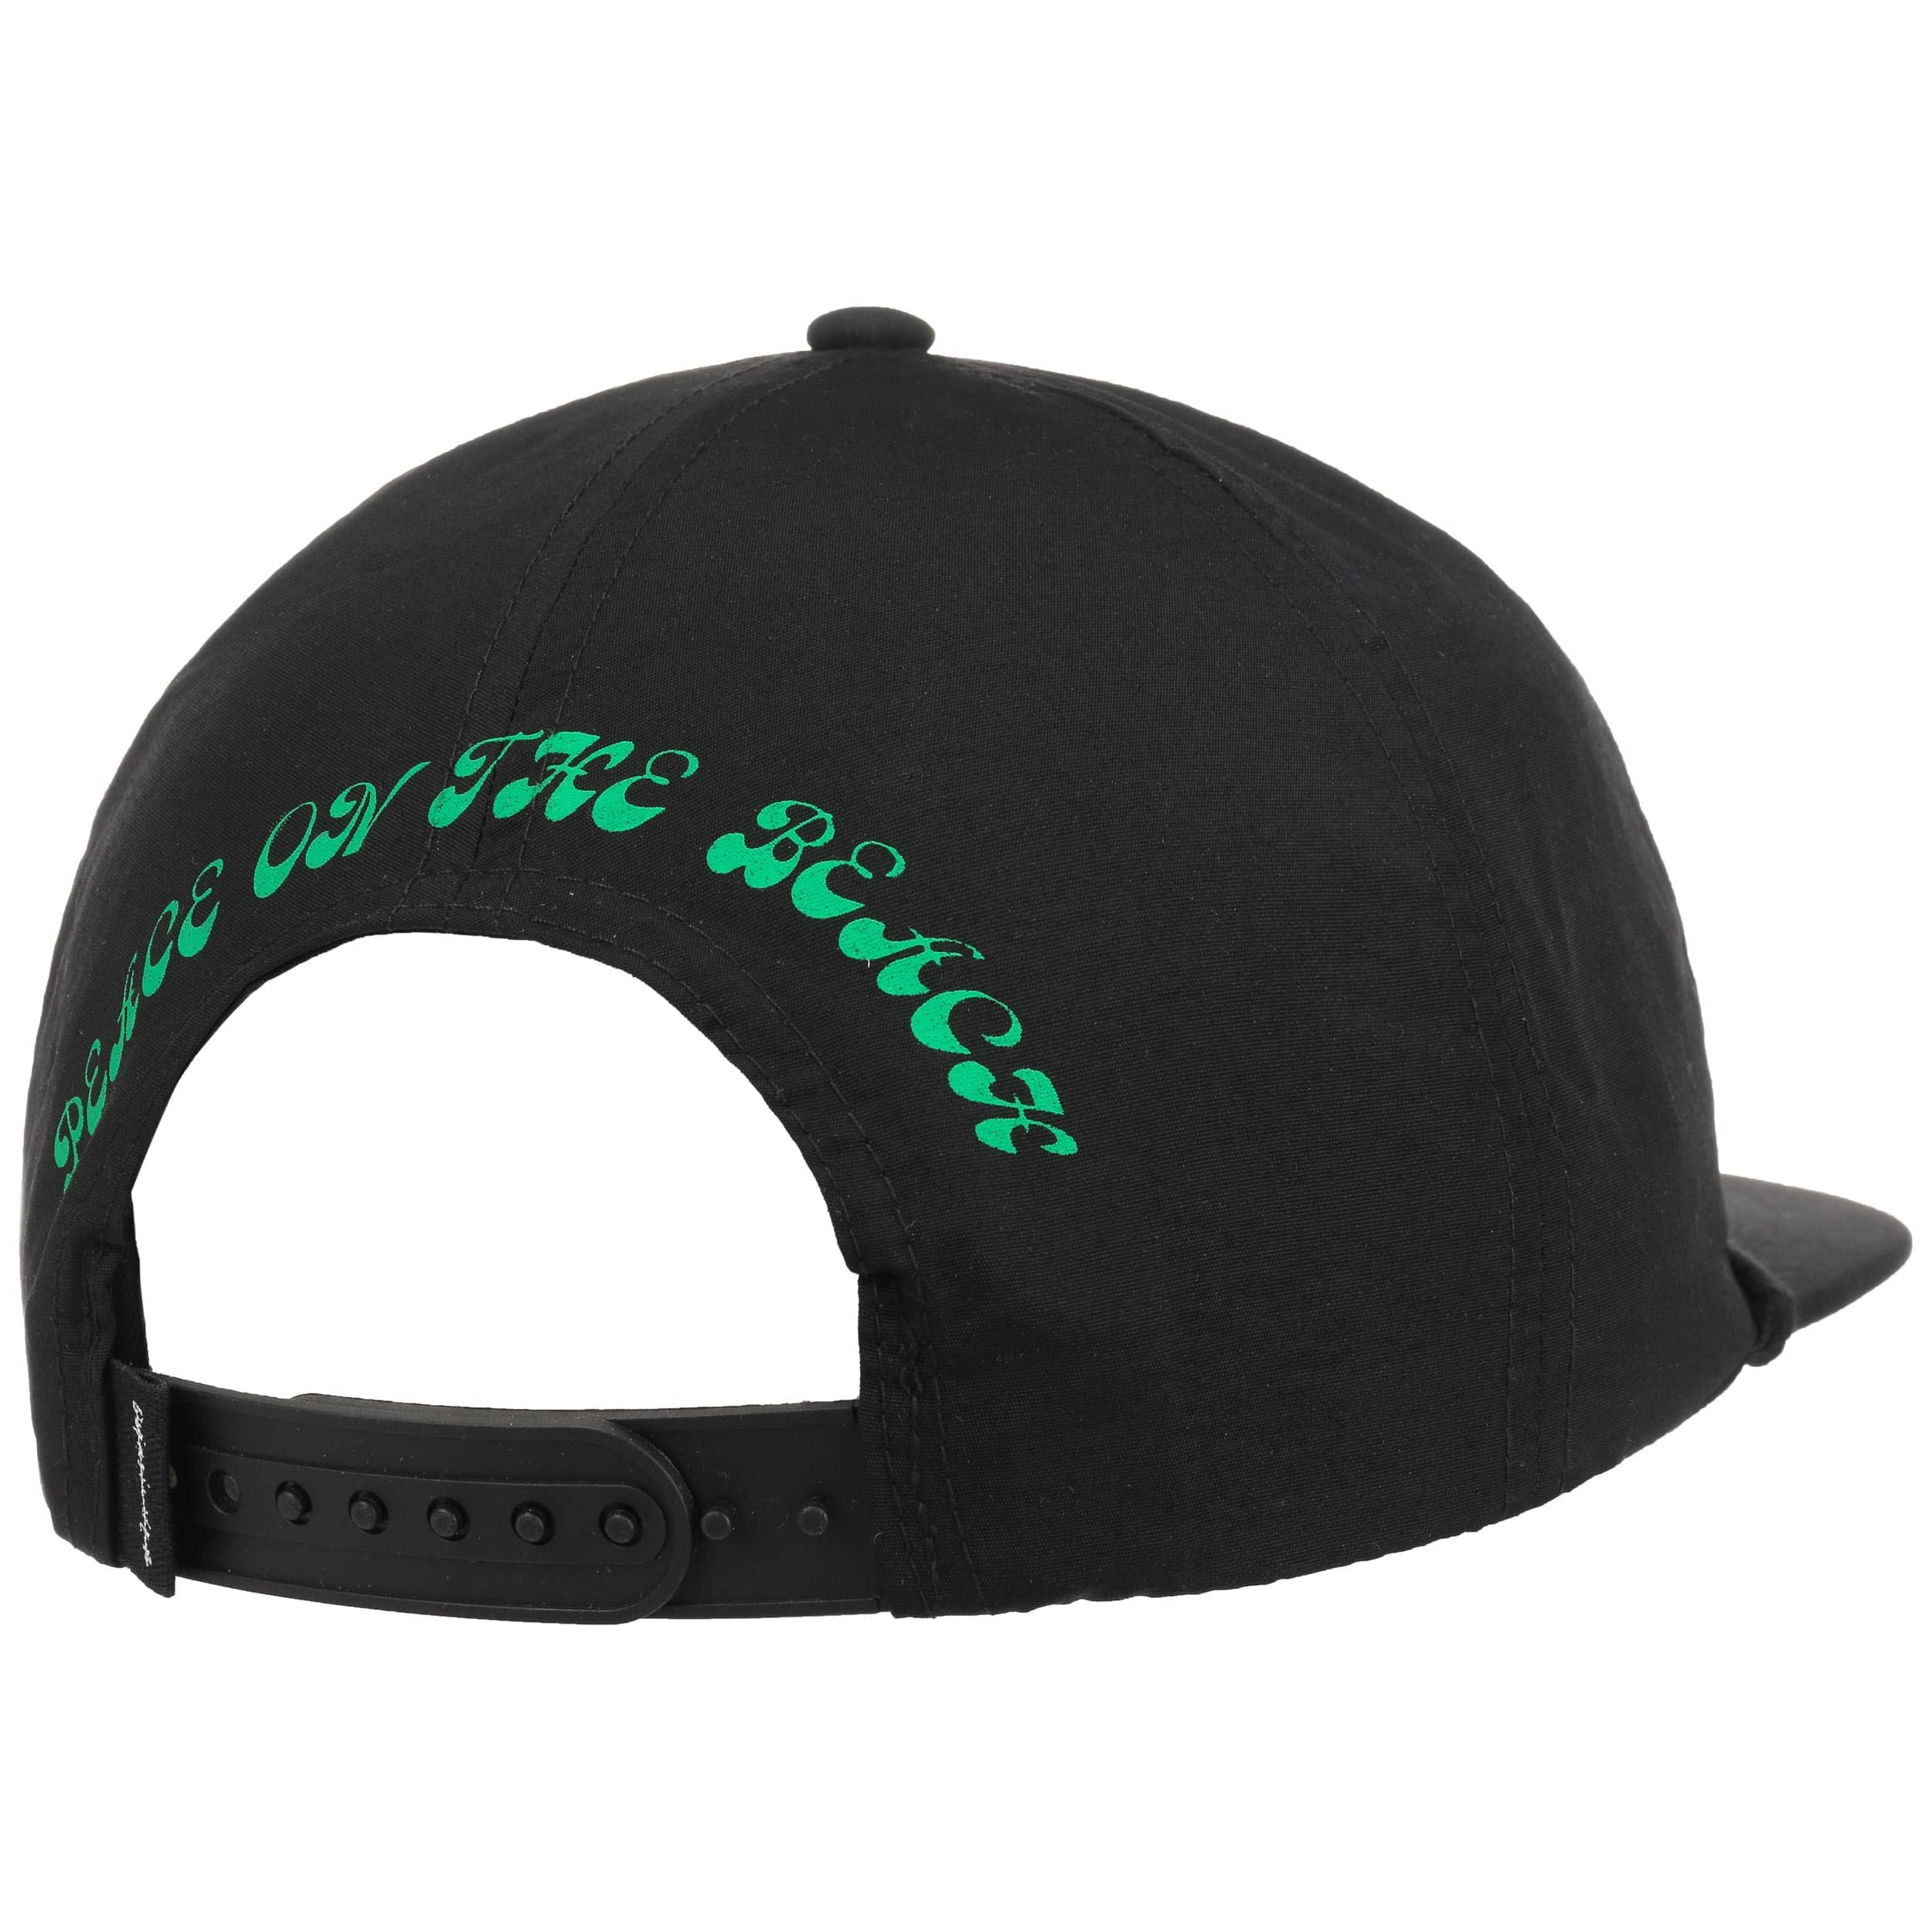 d1dedb65d9771 ... Peace On The Beach Cap by Quiksilver - black 3 ...